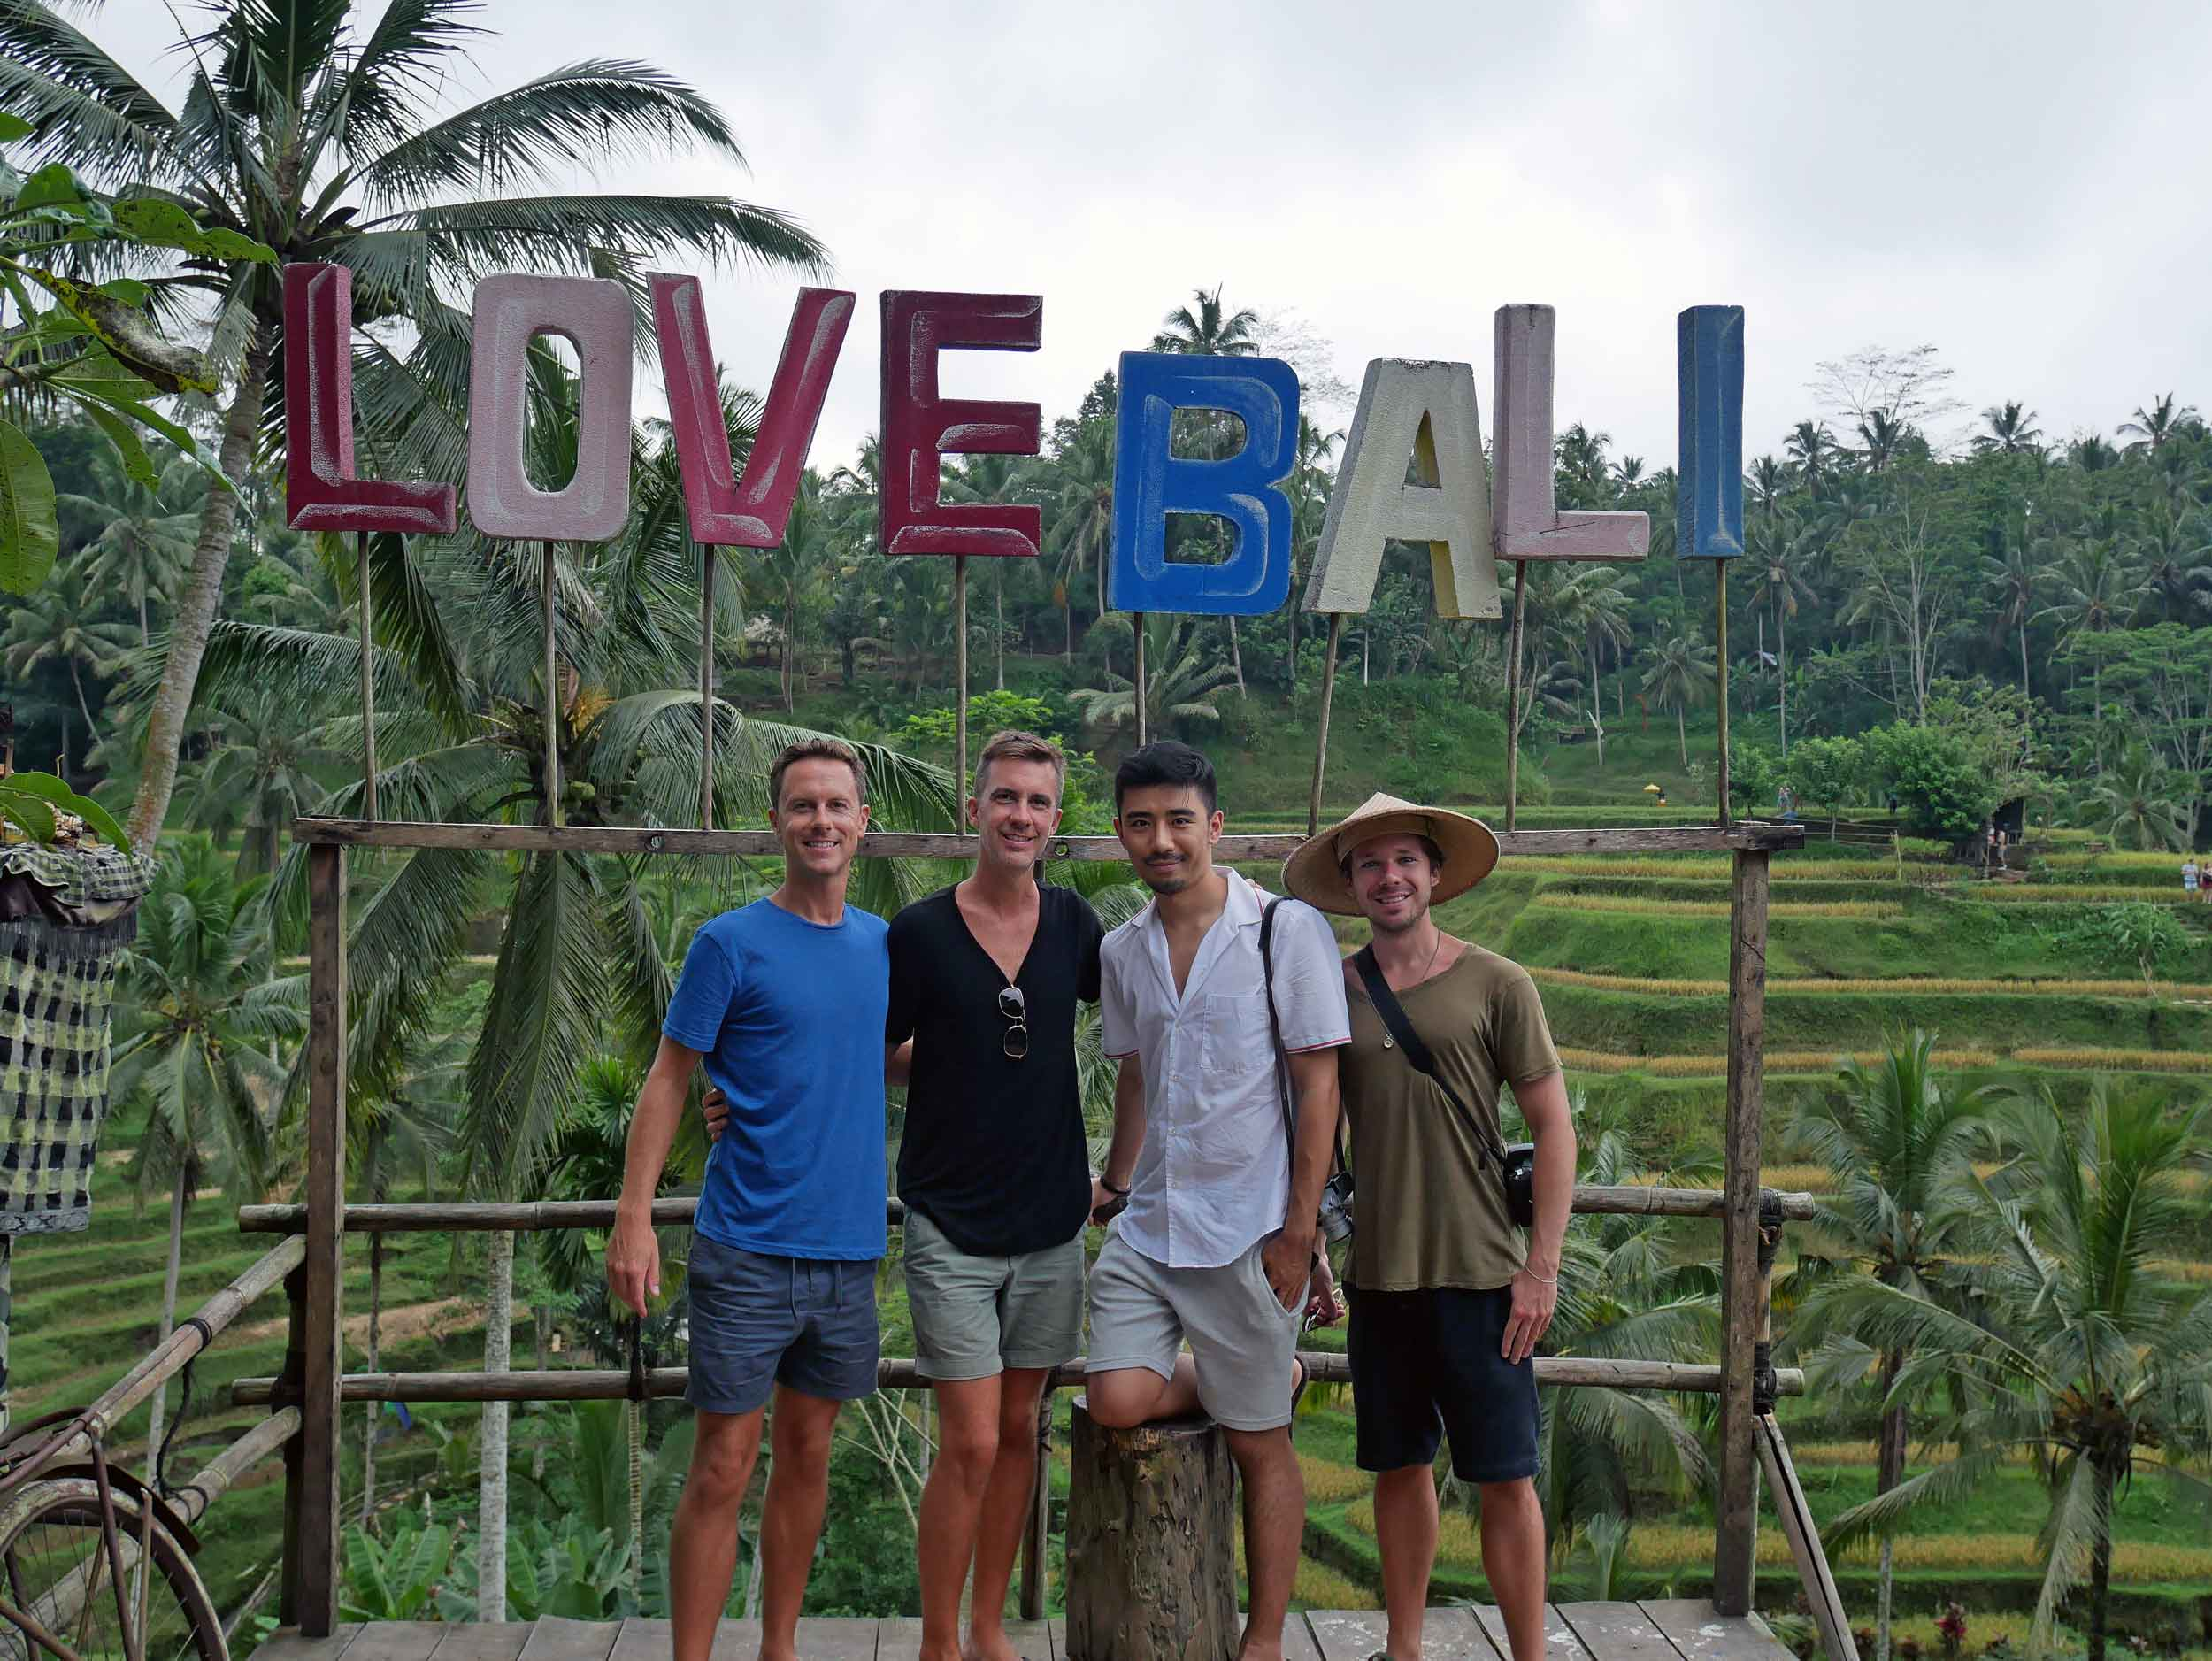 Finally, we (Martin, Trey, Nik and David) arrived to the famous Tegallalang rice terraces that beautifully slope down the verdant valley.